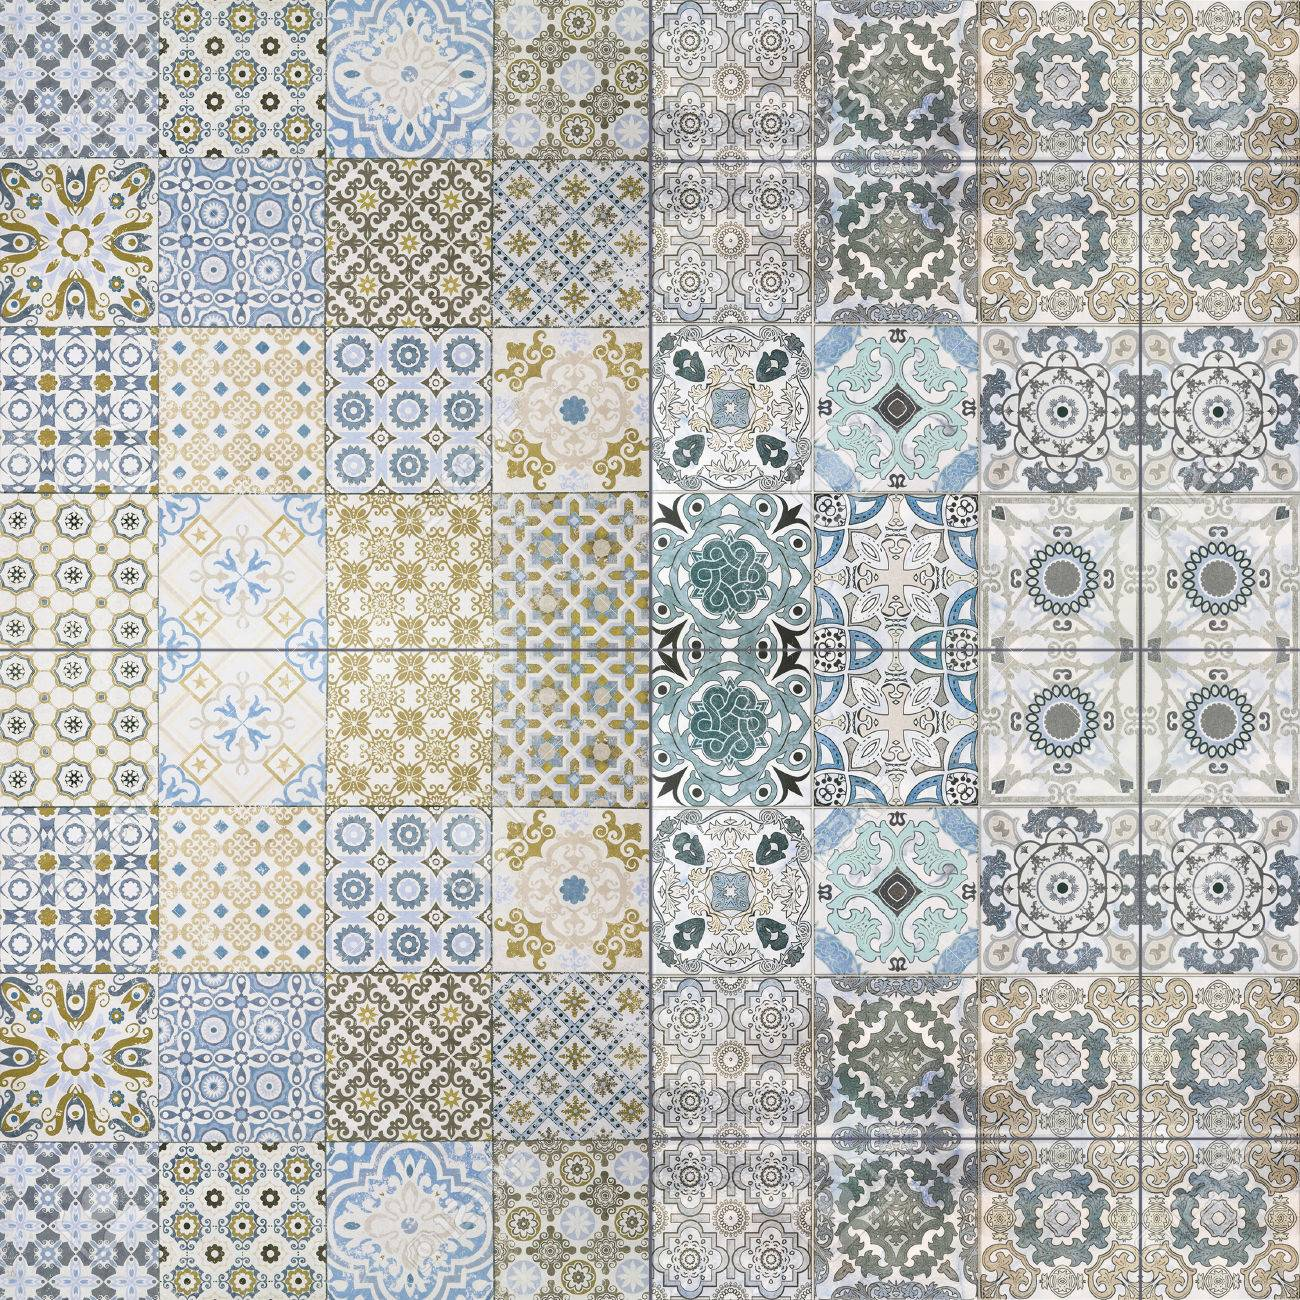 Beautiful Old Ceramic Tile Wall Patterns In The Park Public. Stock ...